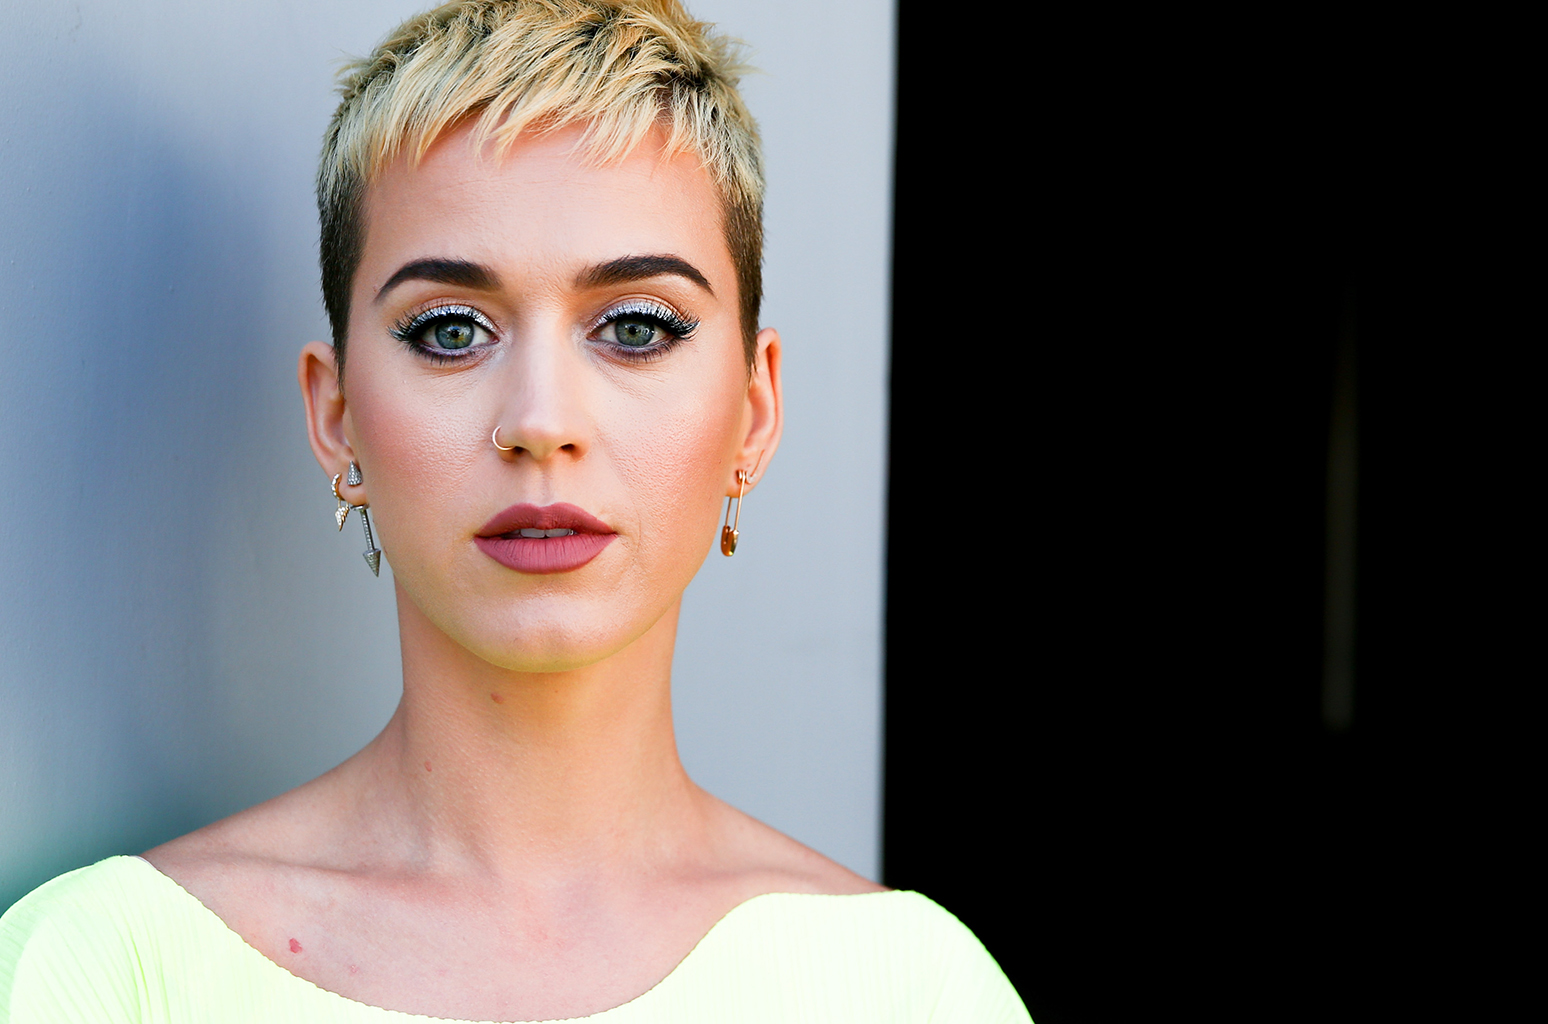 Katy Perry has rated exes Orlando Bloom, John Mayer and Diplo based on who was best in bed.